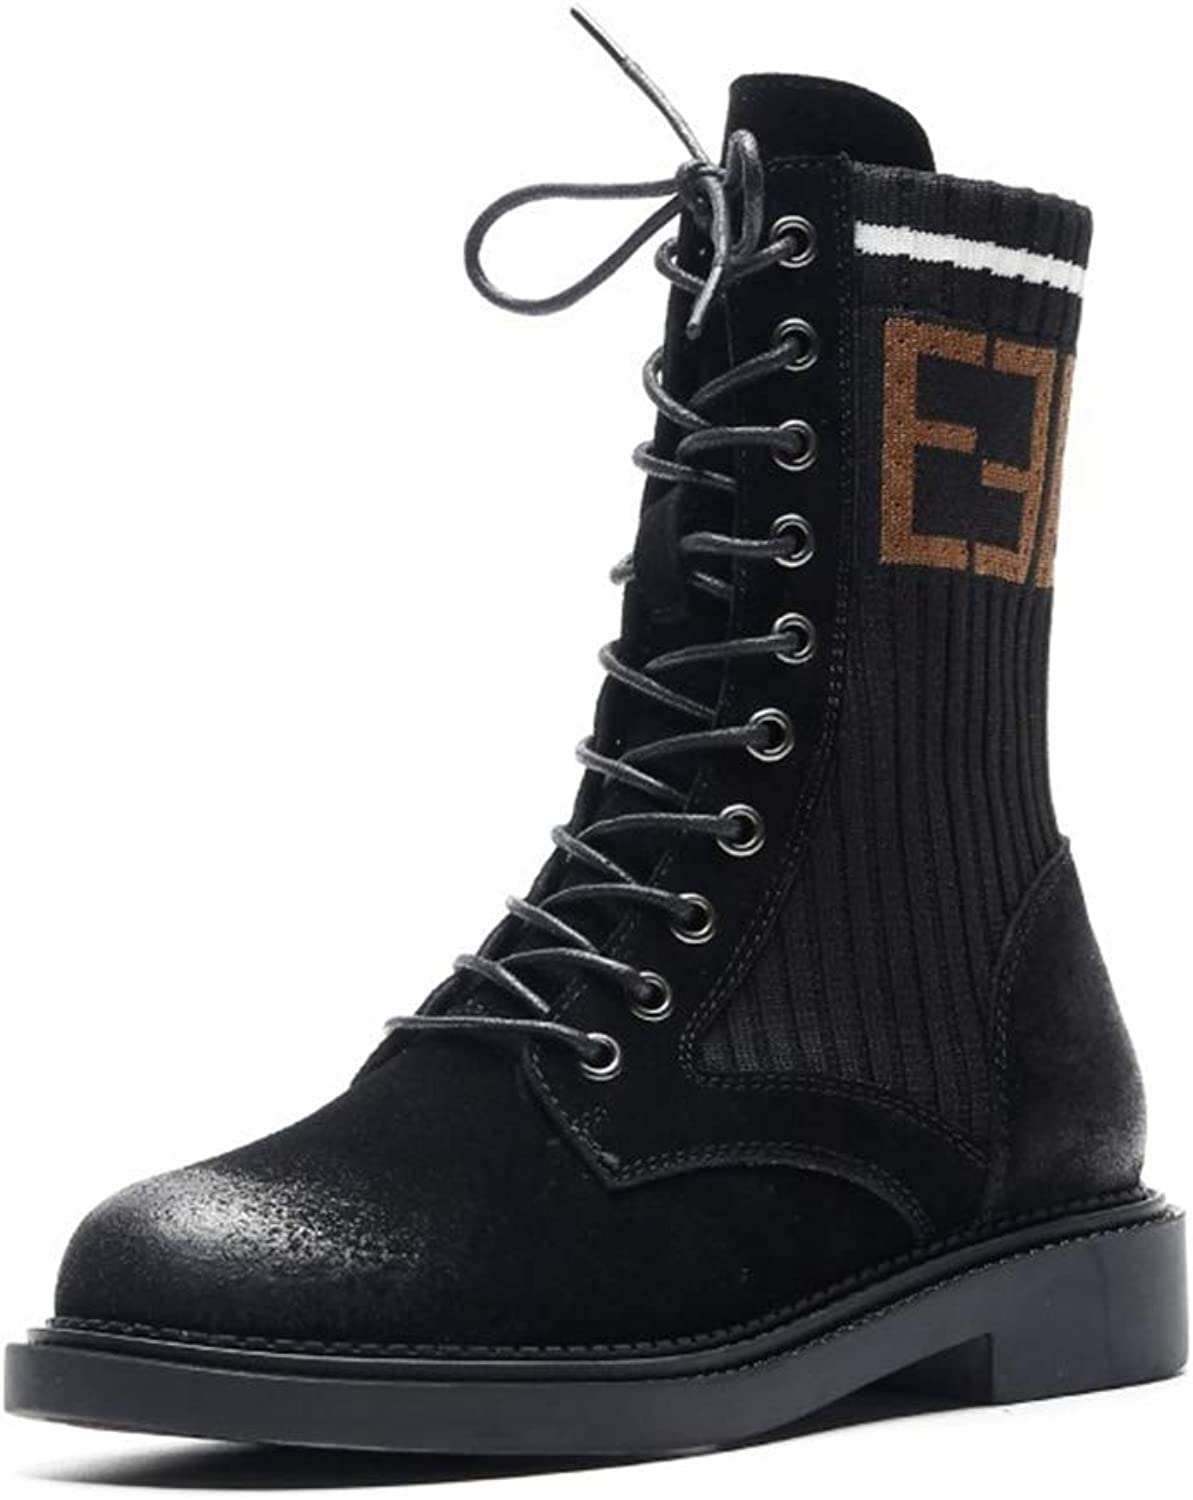 Women's Boots Leather Fashion Martin Boots British Autumn Winter Plus Velvet Thick Heel Boots Lace Up Stretch Boots Black Brown (color   Black, Size   36)